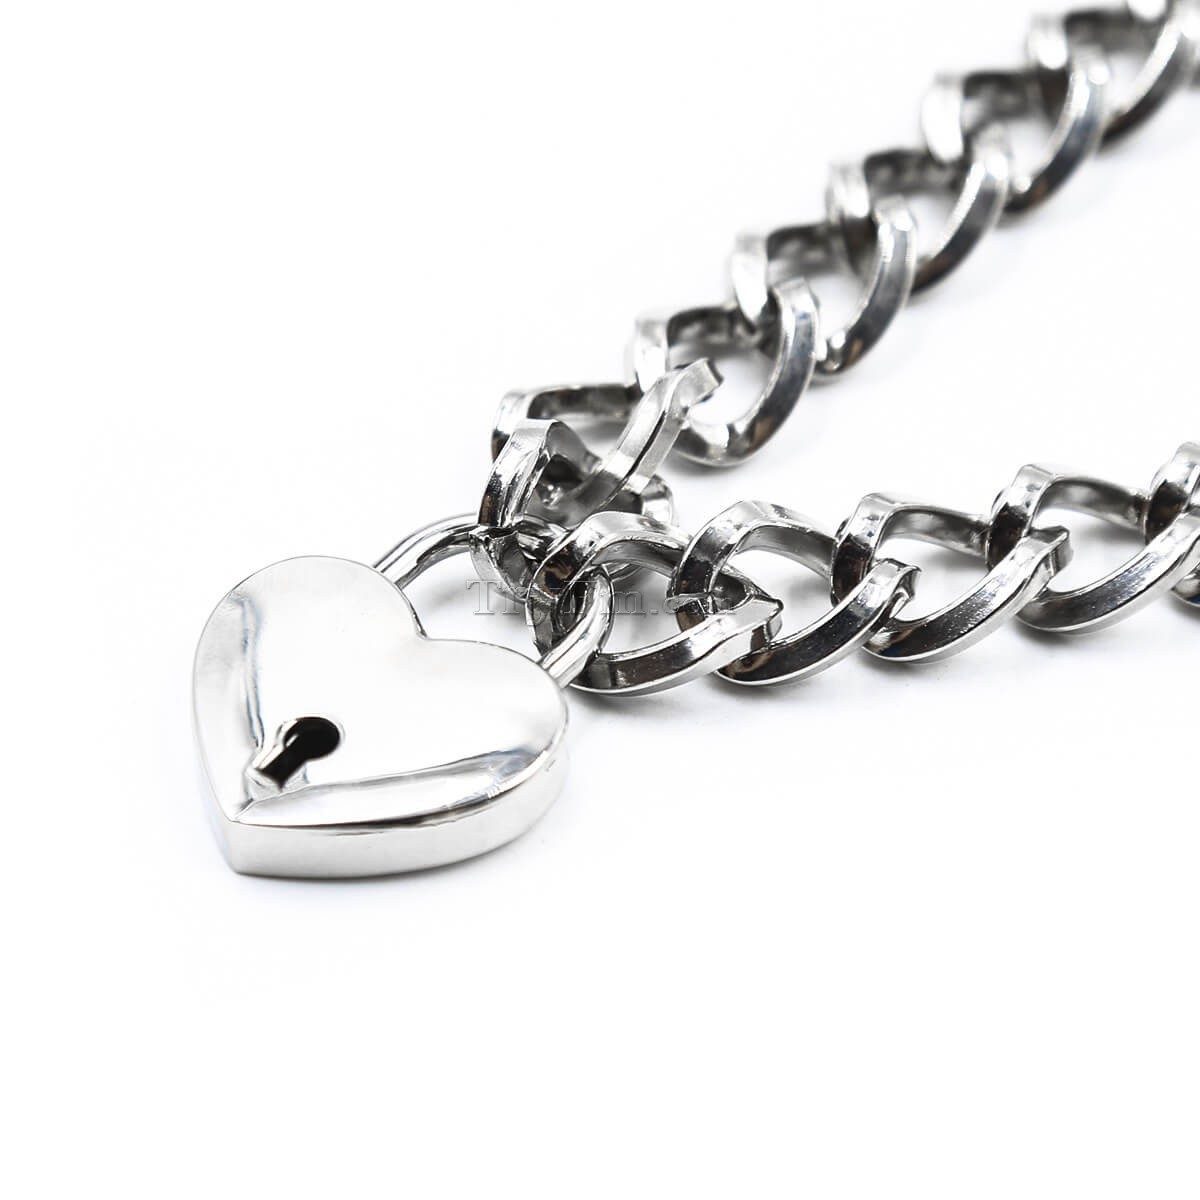 4-silver-chain-lock-collar7.jpg